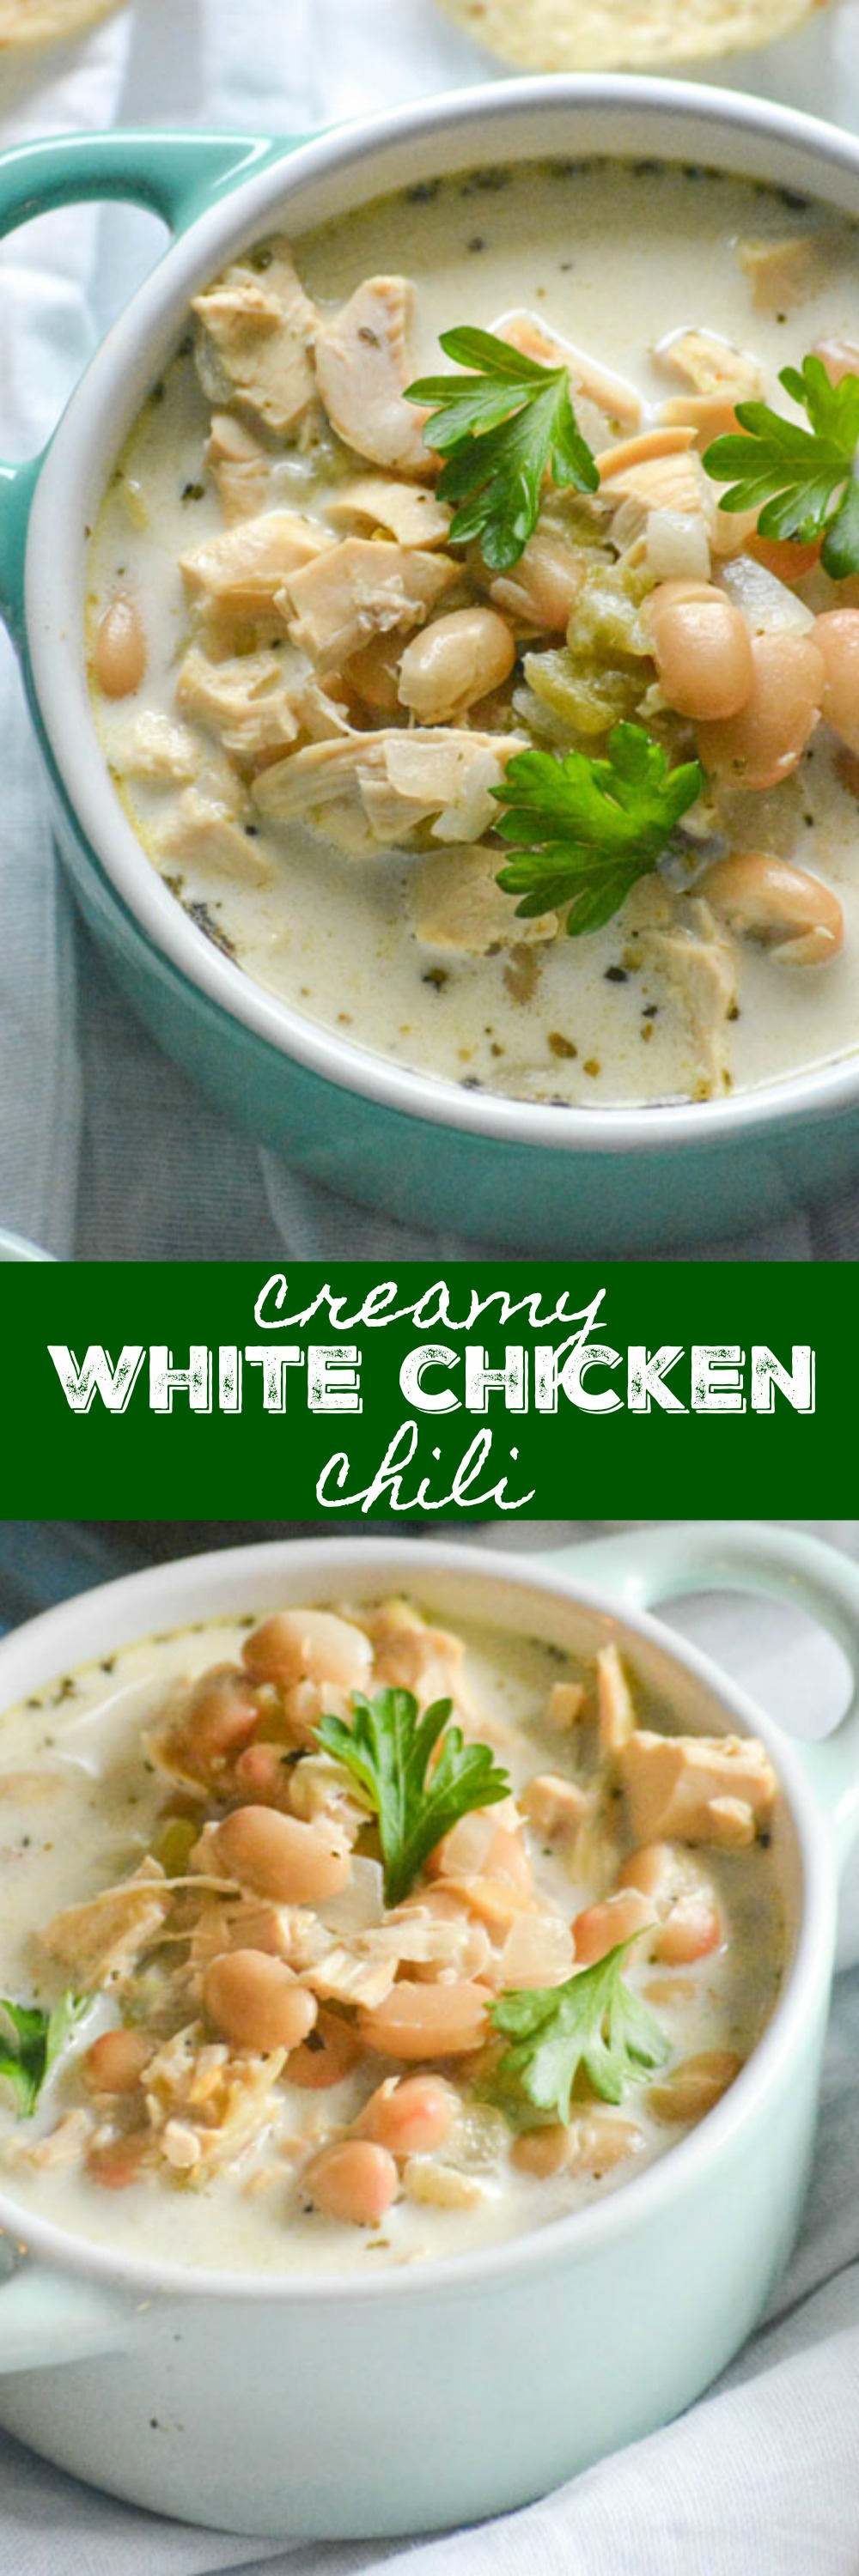 Creamy White Chicken Chili This isn't your Dad's game day chili. Our Creamy White Chicken Chili has a rich, creamy broth studded with chunks of rotisserie chicken, corn, and green chilies seasoned with a zesty blend of savory spices. It's pure comfort food, and fits the bill for just about any occasion. 4 Sons 'R' Us